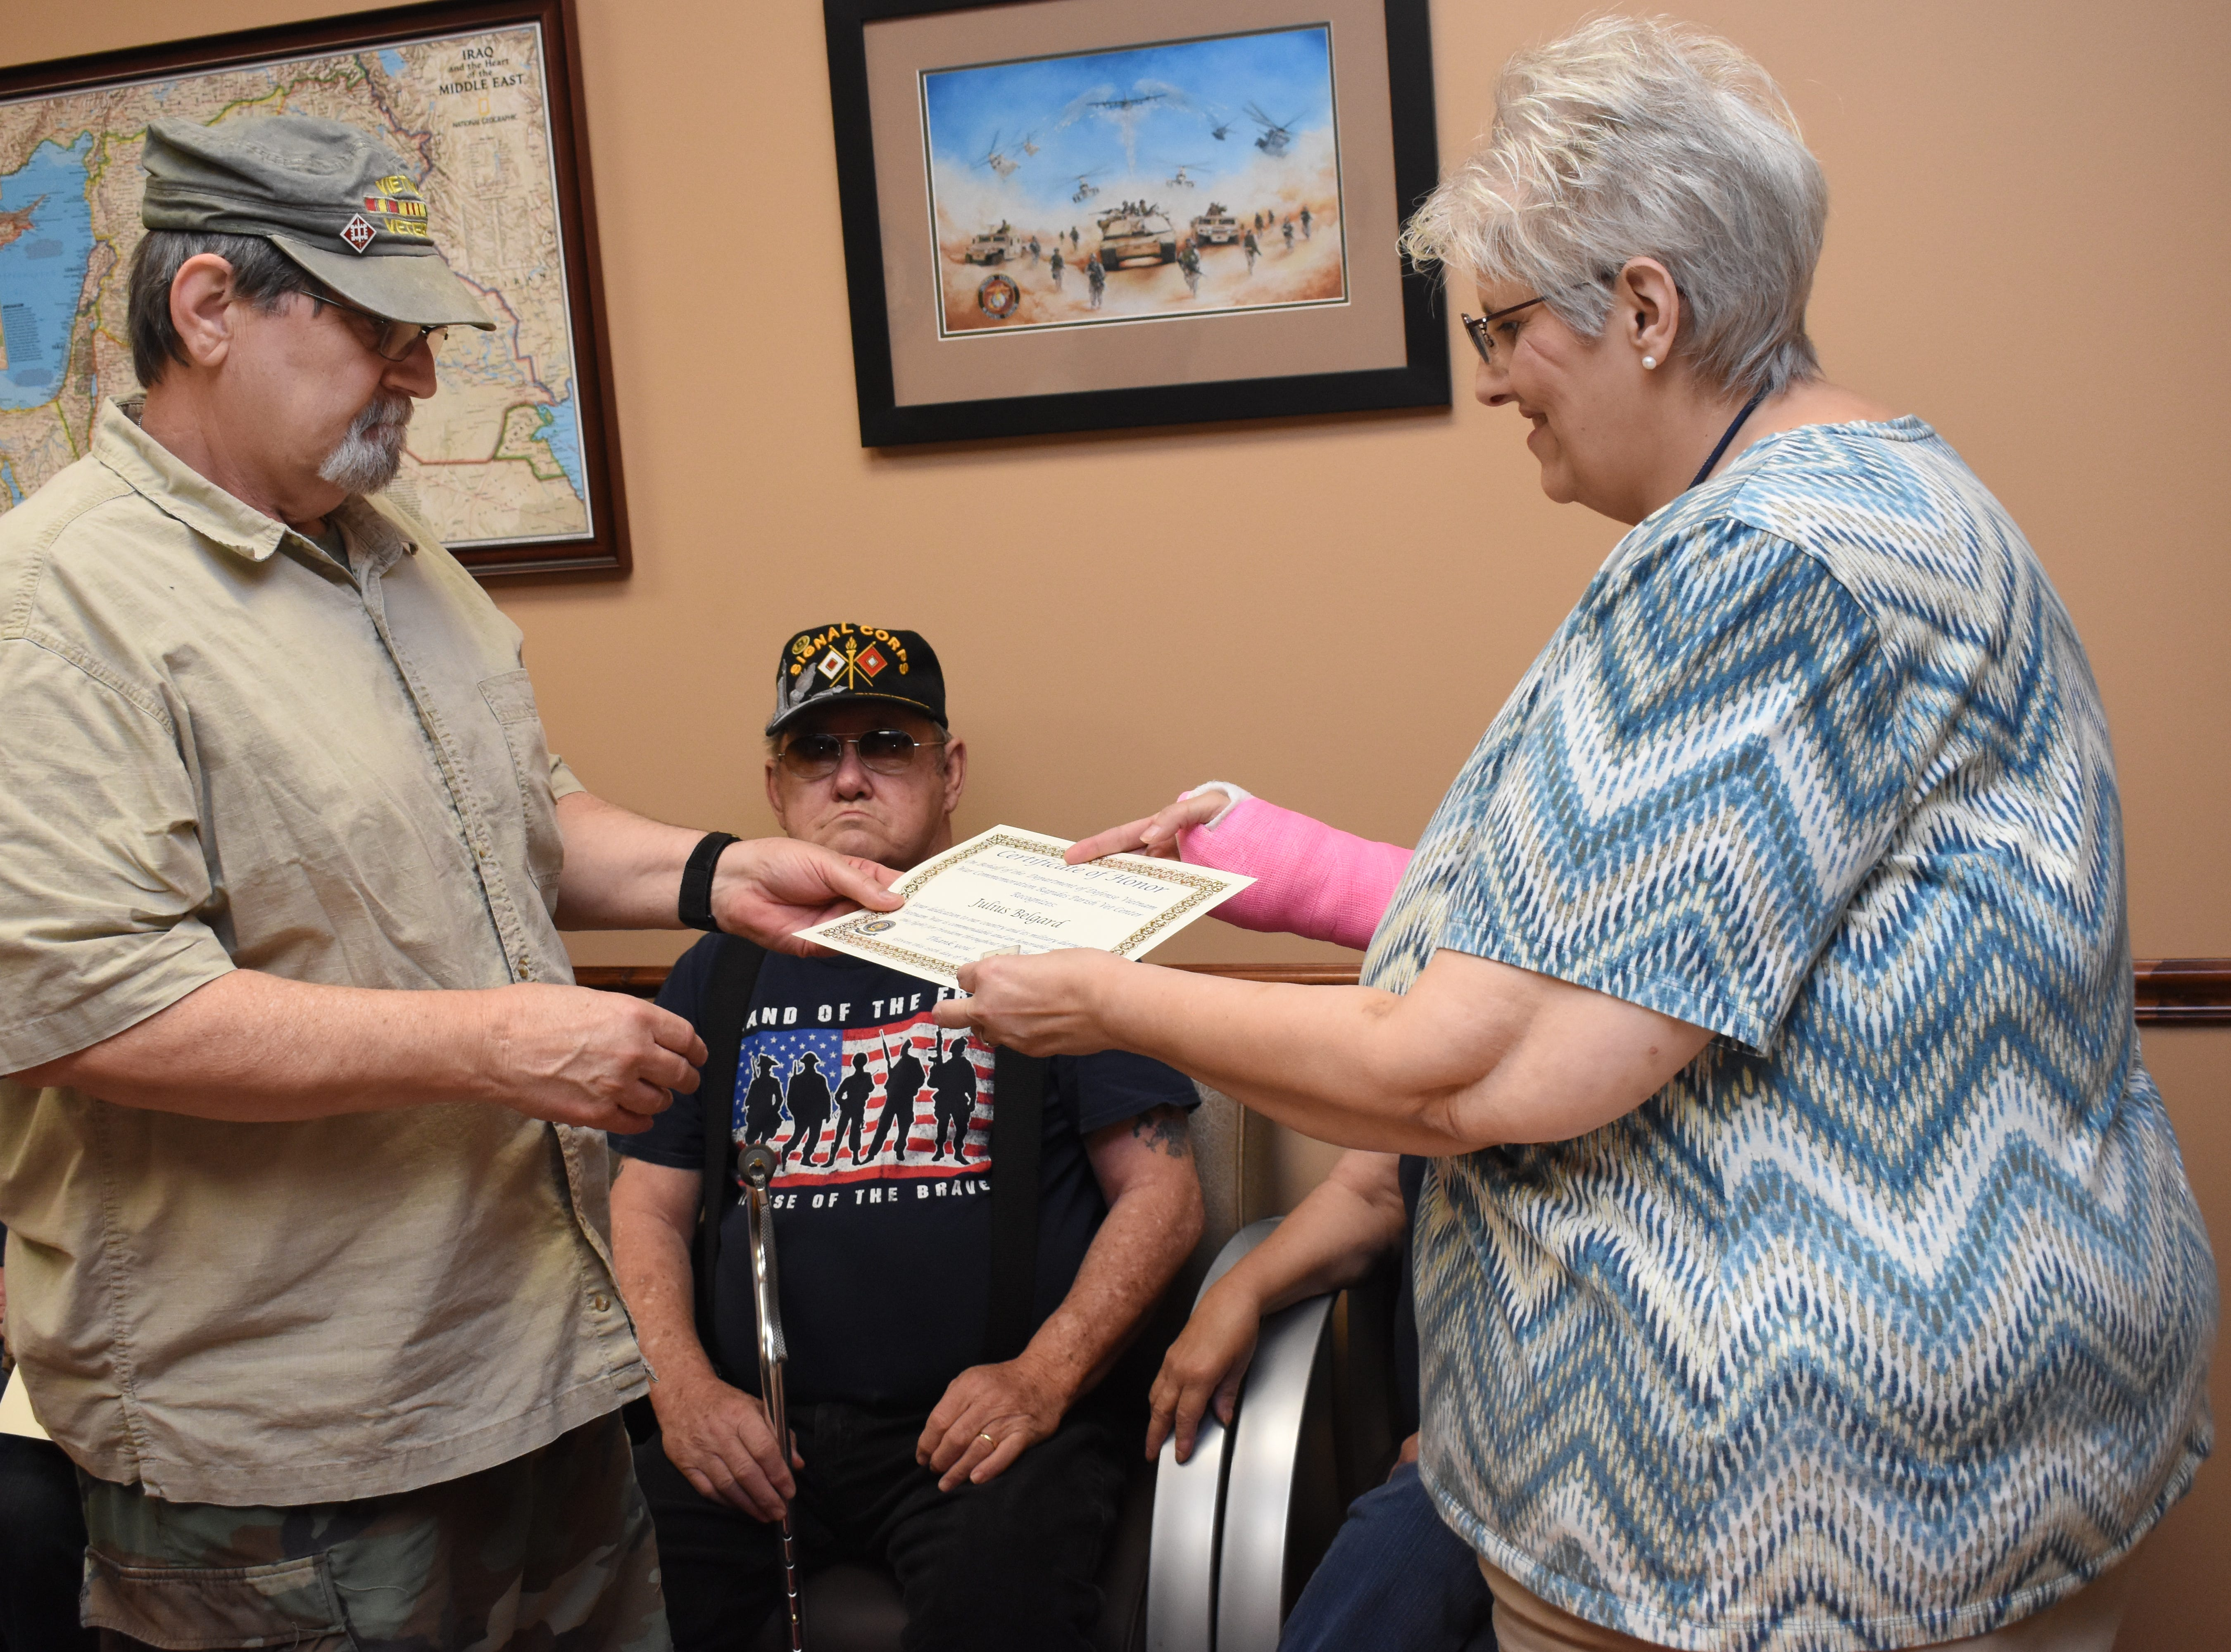 """Rapides Parish Vet Center, located at 5803 Coliseum Blvd., which serves combat-era military veterans, held a pin ceremony Friday, March 29, 2019 for Vietnam War veterans in recognition of Vietnam Veterans Day. Over the course of the day over 50 pins and certificates were handed out. Vietnam Veterans Day honors those who served and their families. The Vietnam War Veterans Recognition Act  was signed into law in 2017. """"Welcome Home Vietnam Veterans Day"""" is celebrated in most states on March 29 or March 30. On March 29, 1973 the last troops withdrew from Vietnam and American prisoners of war were returned. This is also the date President Richard Nixon designated for the first Vietnam Veterans Day in 1974. For more information about the Rapides Parish Vet Center and their services, call (318) 466-4327."""